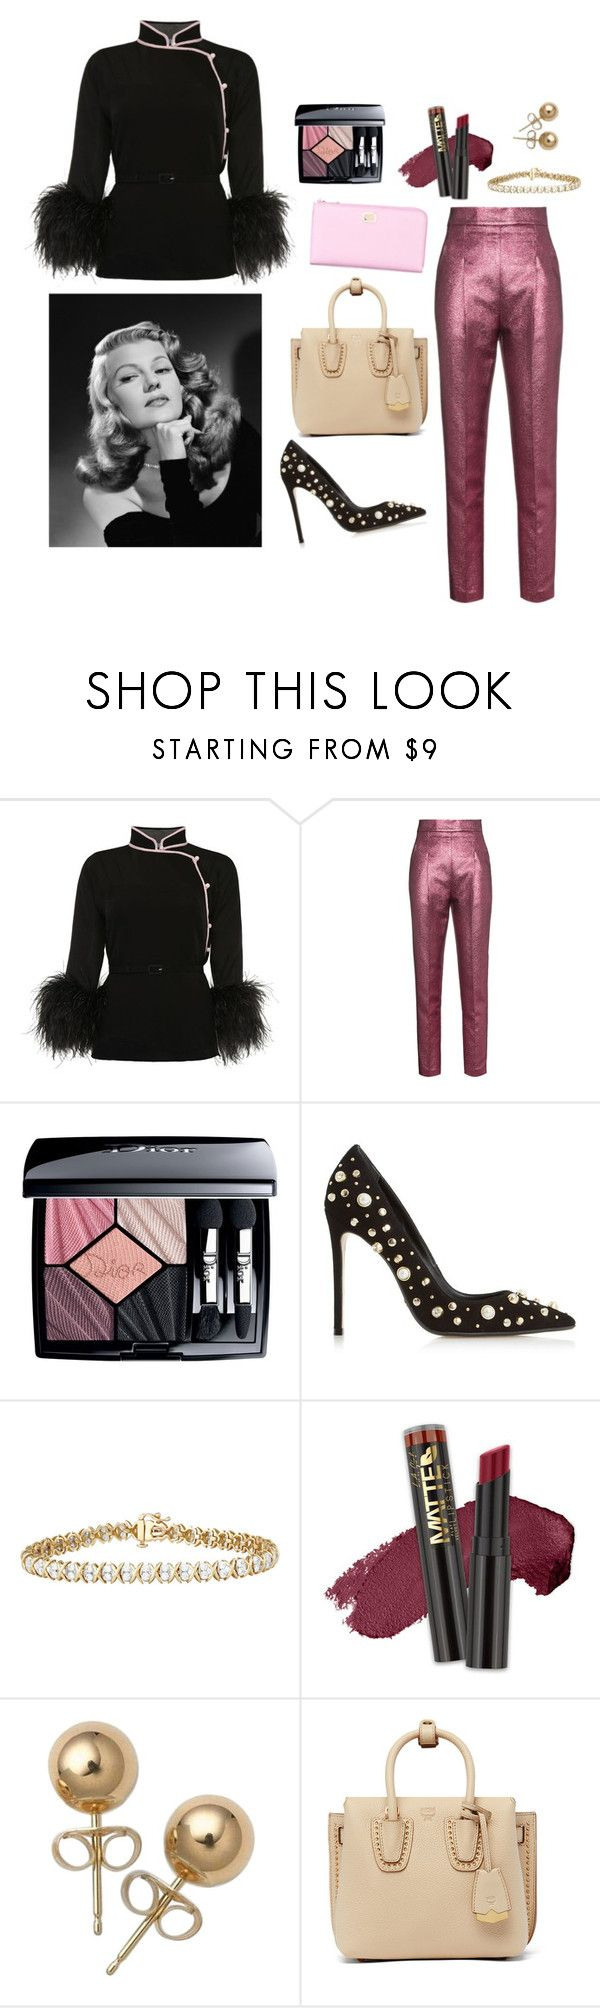 """Nothing like a strong woman."" by bunnisexy ❤ liked on Polyvore featuring Prada, Philosophy di Lorenzo Serafini, Christian Dior, Dune Black, L.A. Girl, Bling Jewelry, MCM and Dolce&Gabbana"